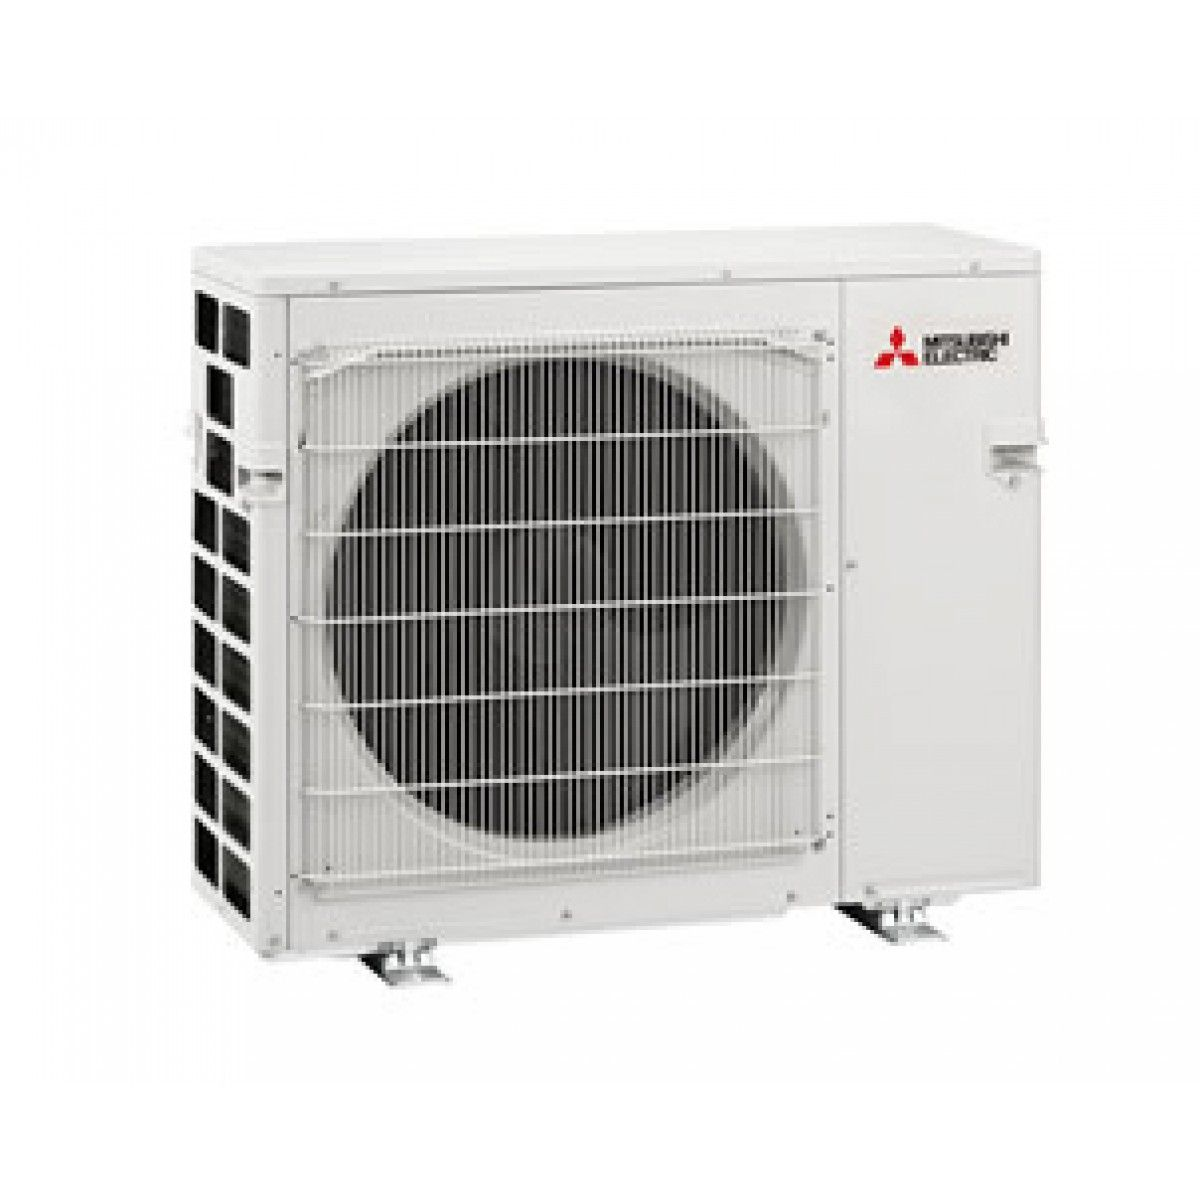 Mitsubishi 24k btu 3 zone heat pump condenser mxz 3c24na for Ductless ac